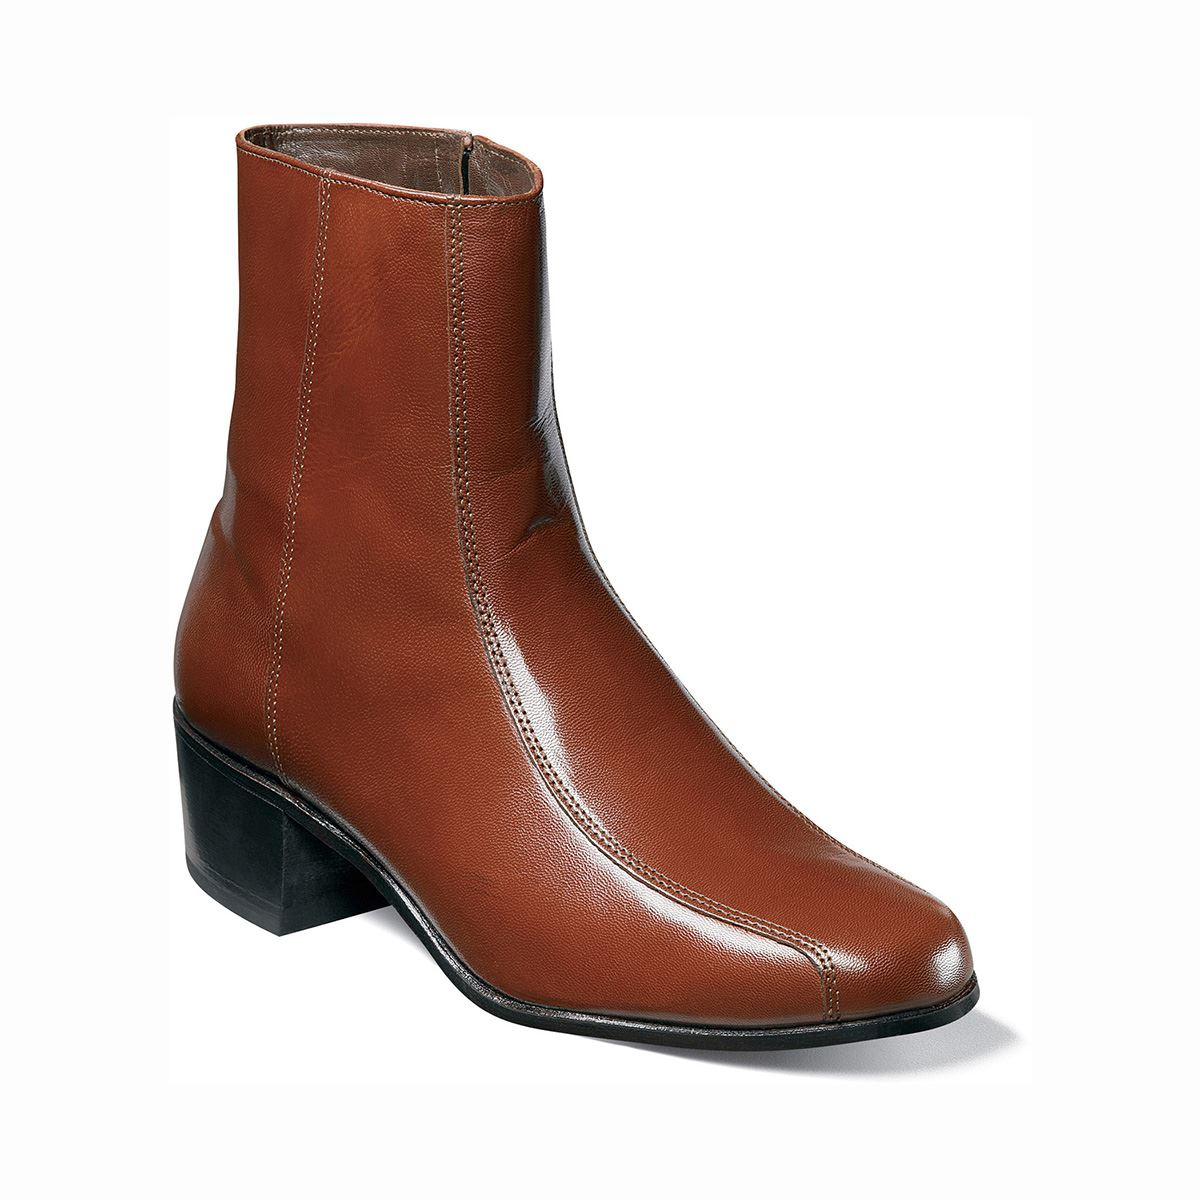 Florsheim Florsheim Florsheim Uomo Duke Bike Toe Zipper Boot (17087) 751929